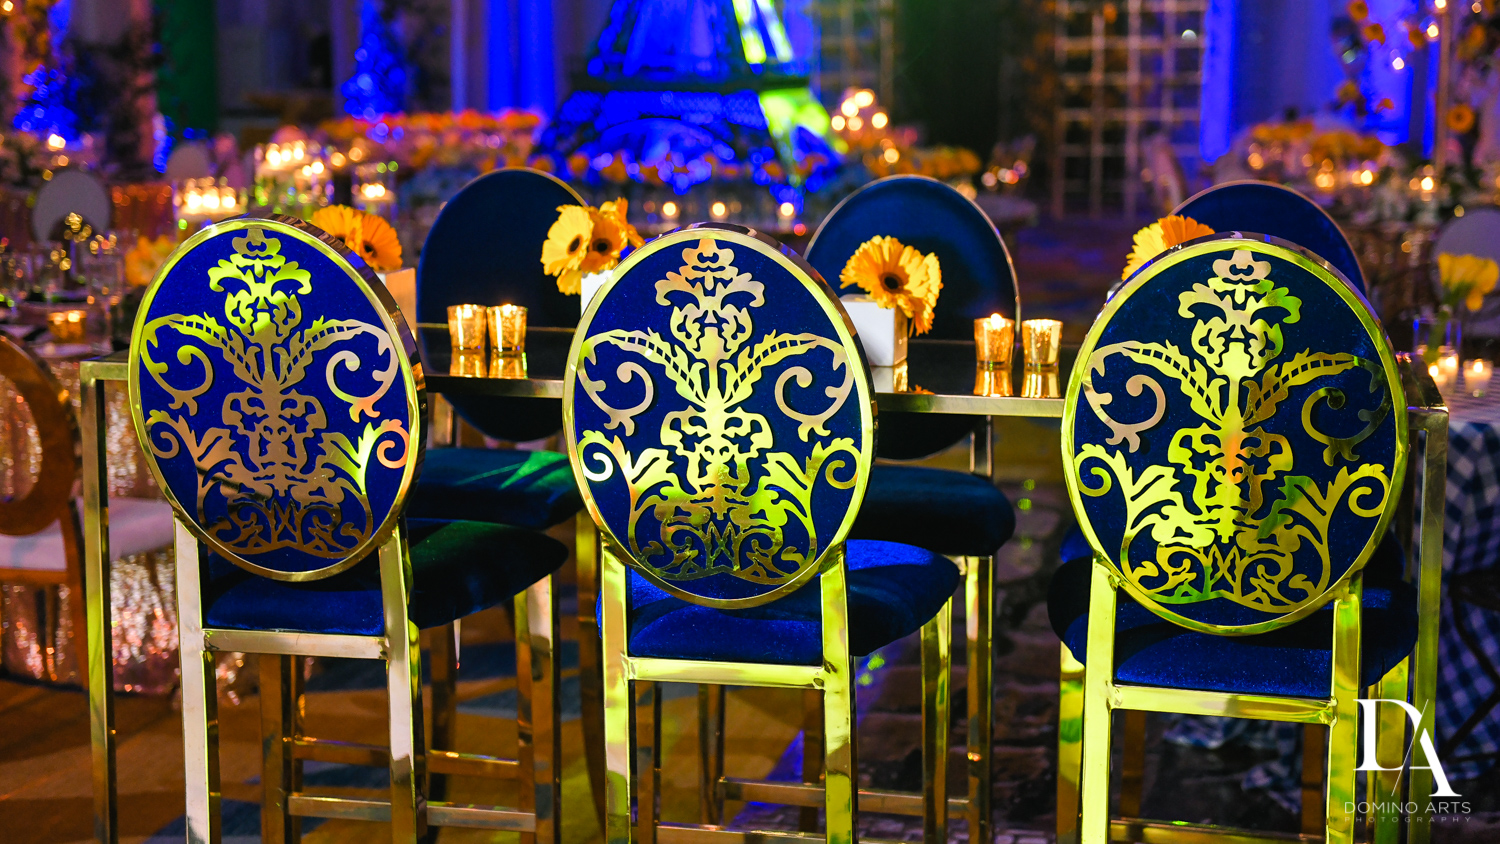 unique chair rental for Madeline in Paris theme Bat Mitzvah at Boca Raton Resort and Club by Domino Arts Photography